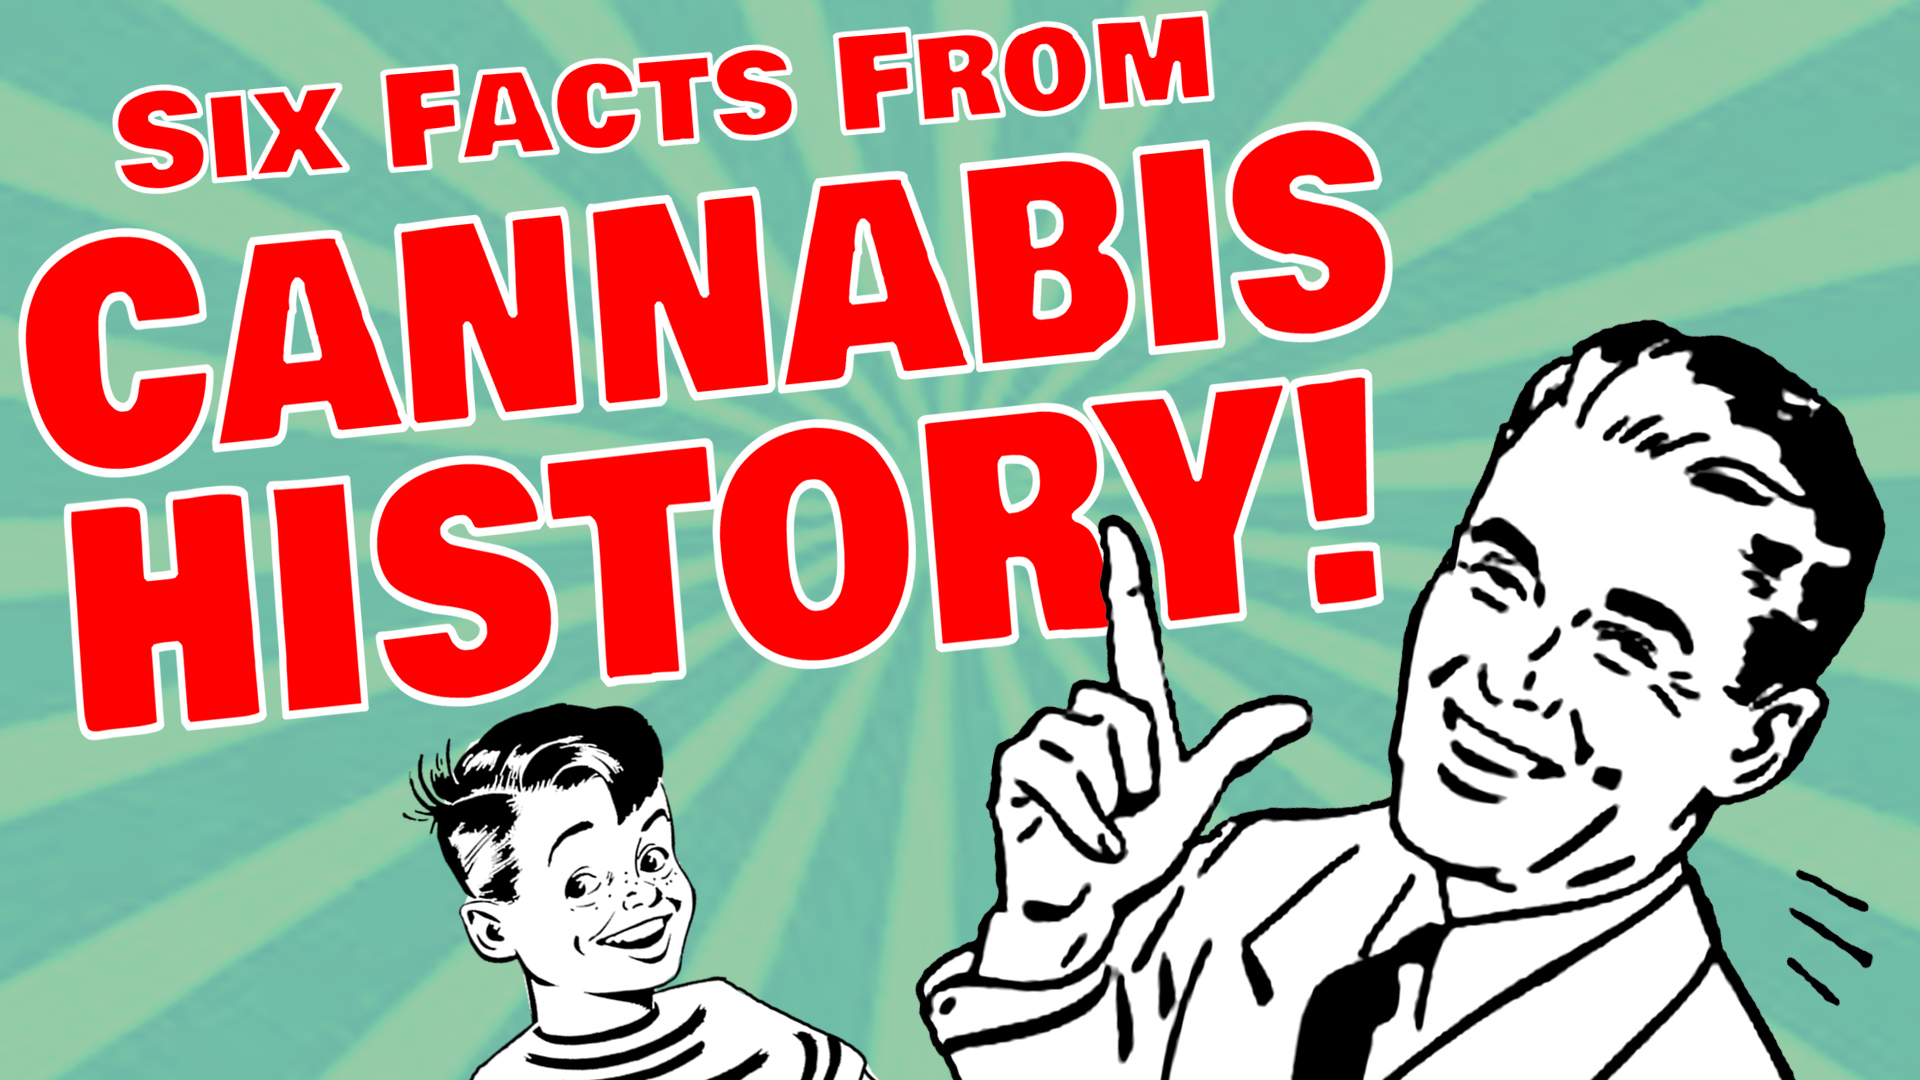 Six Facts From Cannabis History? – Reefer Madness Returns